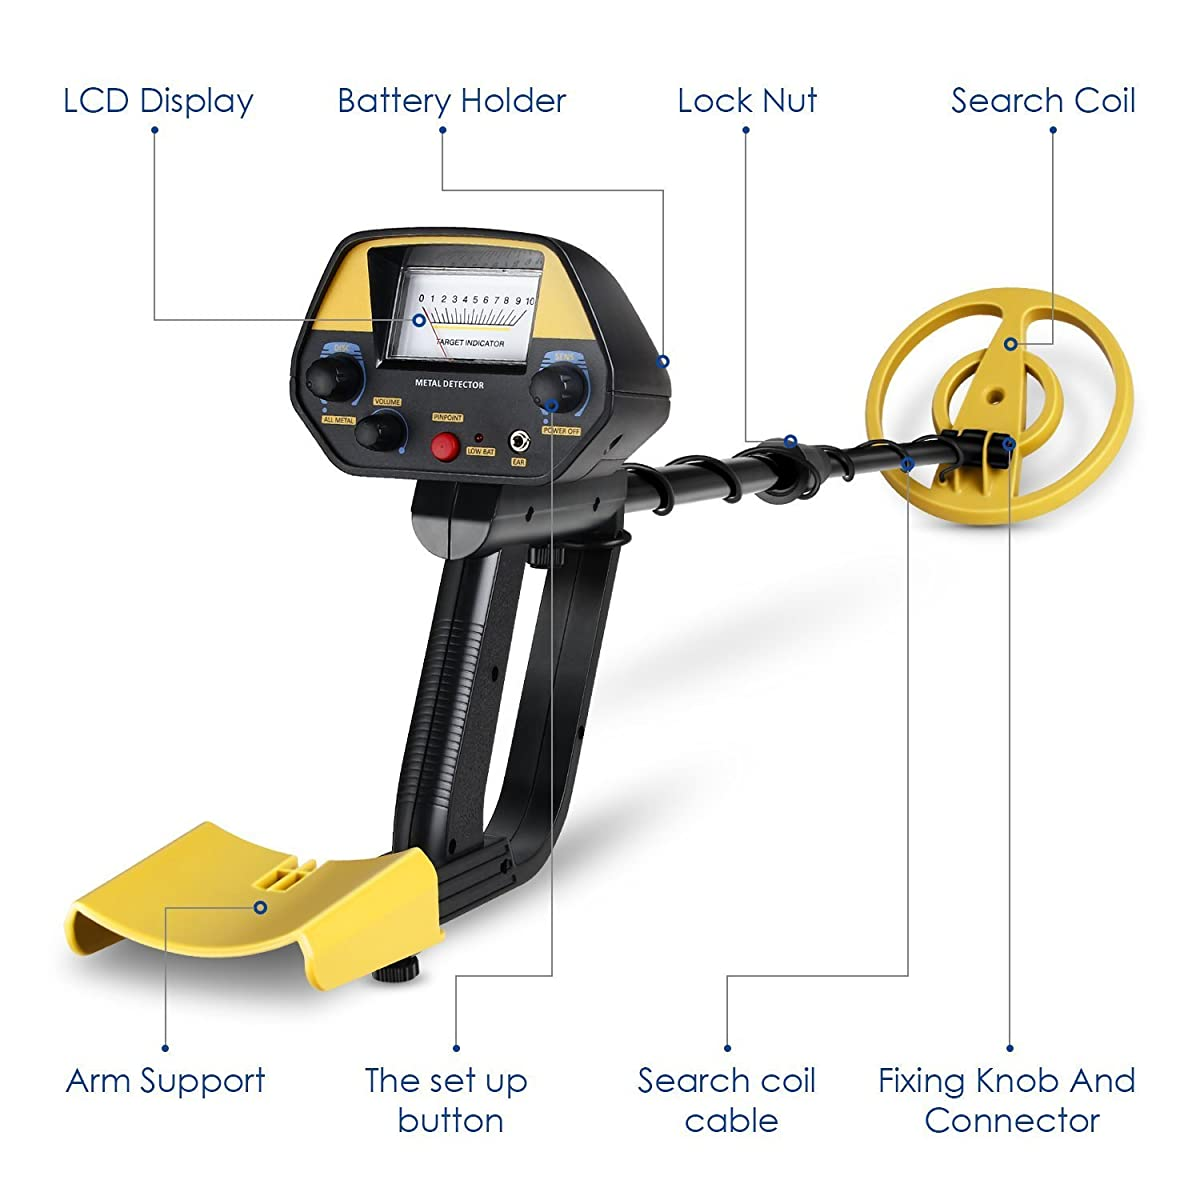 INTEY Classic Metal Detector - Lightweight Gold Digger with Pinpoint Function/ Waterproof Search Coil -High Accuracy Metal Detectors Plus Folding Shovel/Rucksack (Min length: 30In; Max length: 40In)